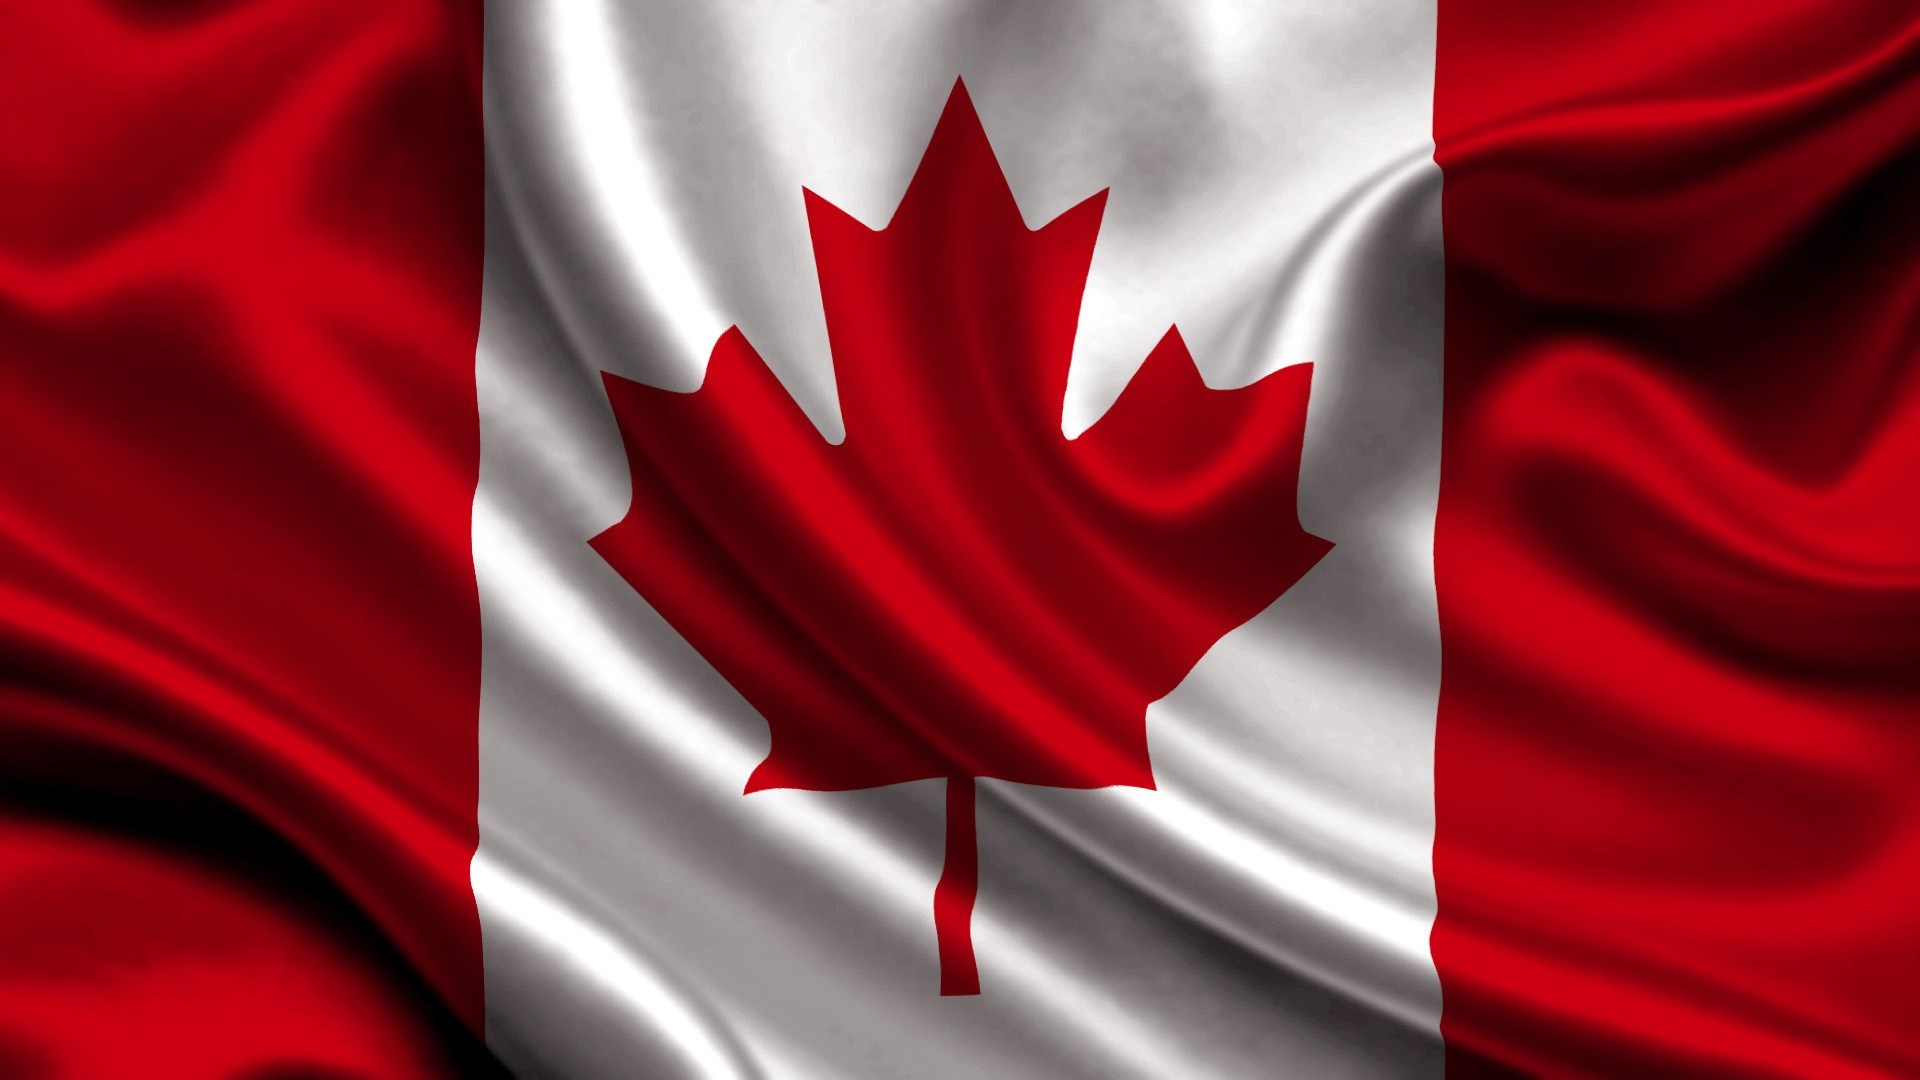 flag-of-canada-backgrounds-hd-1920x1080-kB-wallpaper-wp3605604